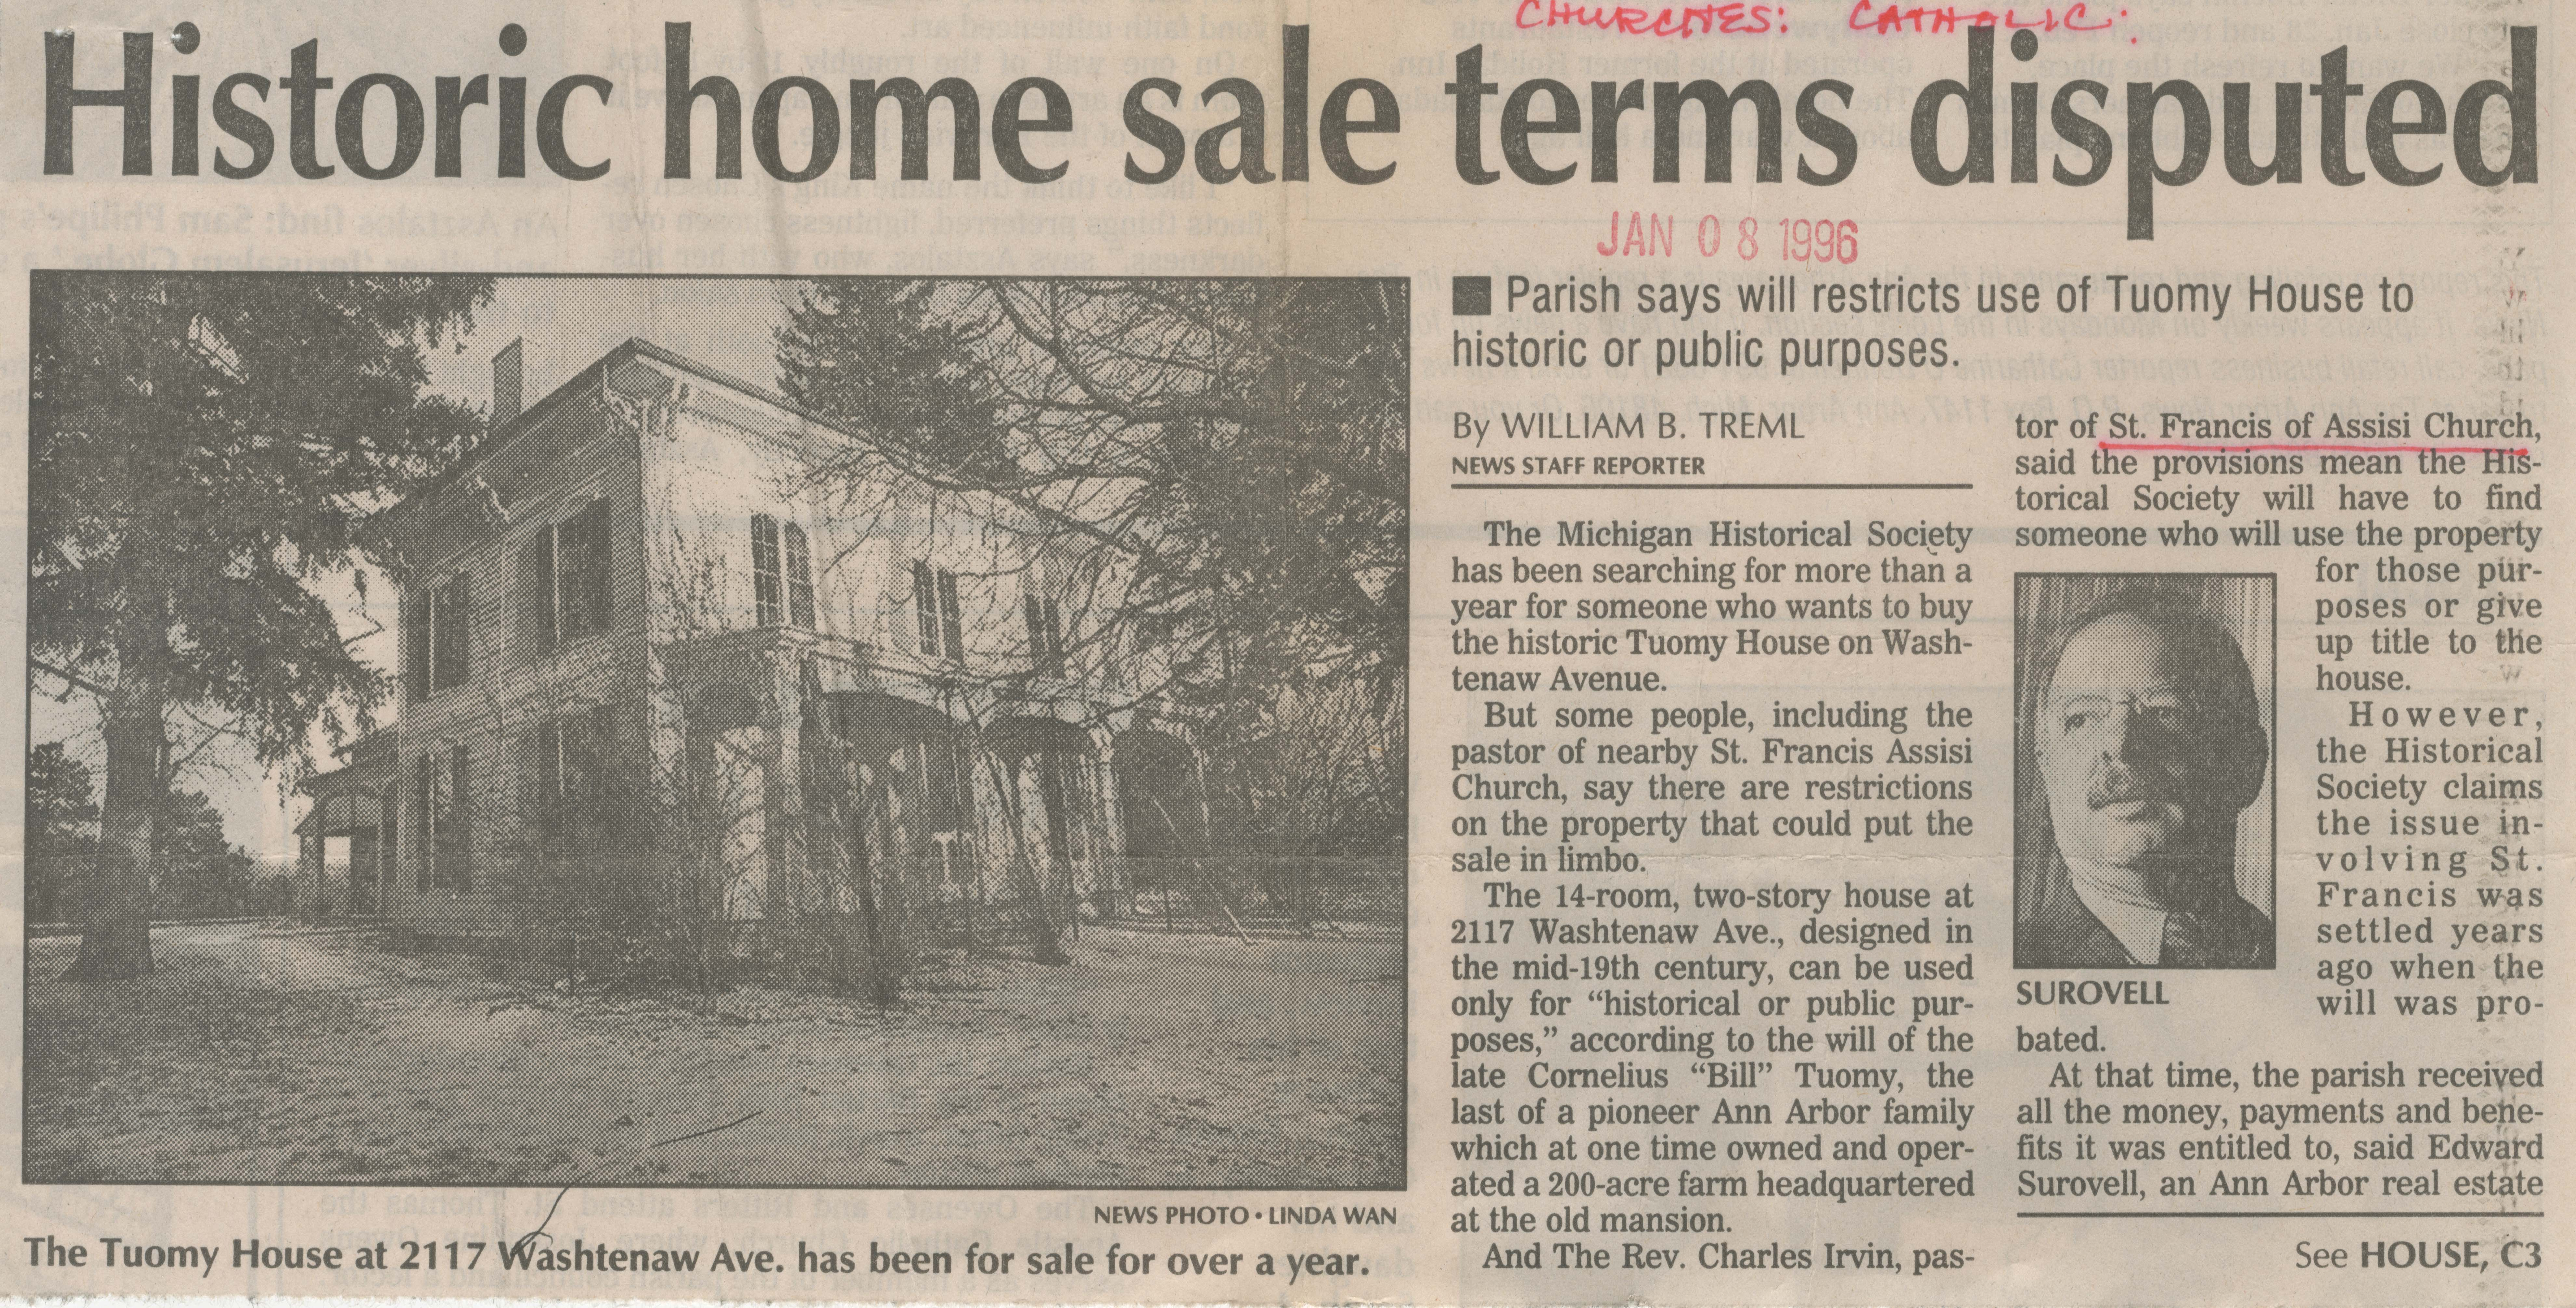 Historic Home Sale Terms Disputed image